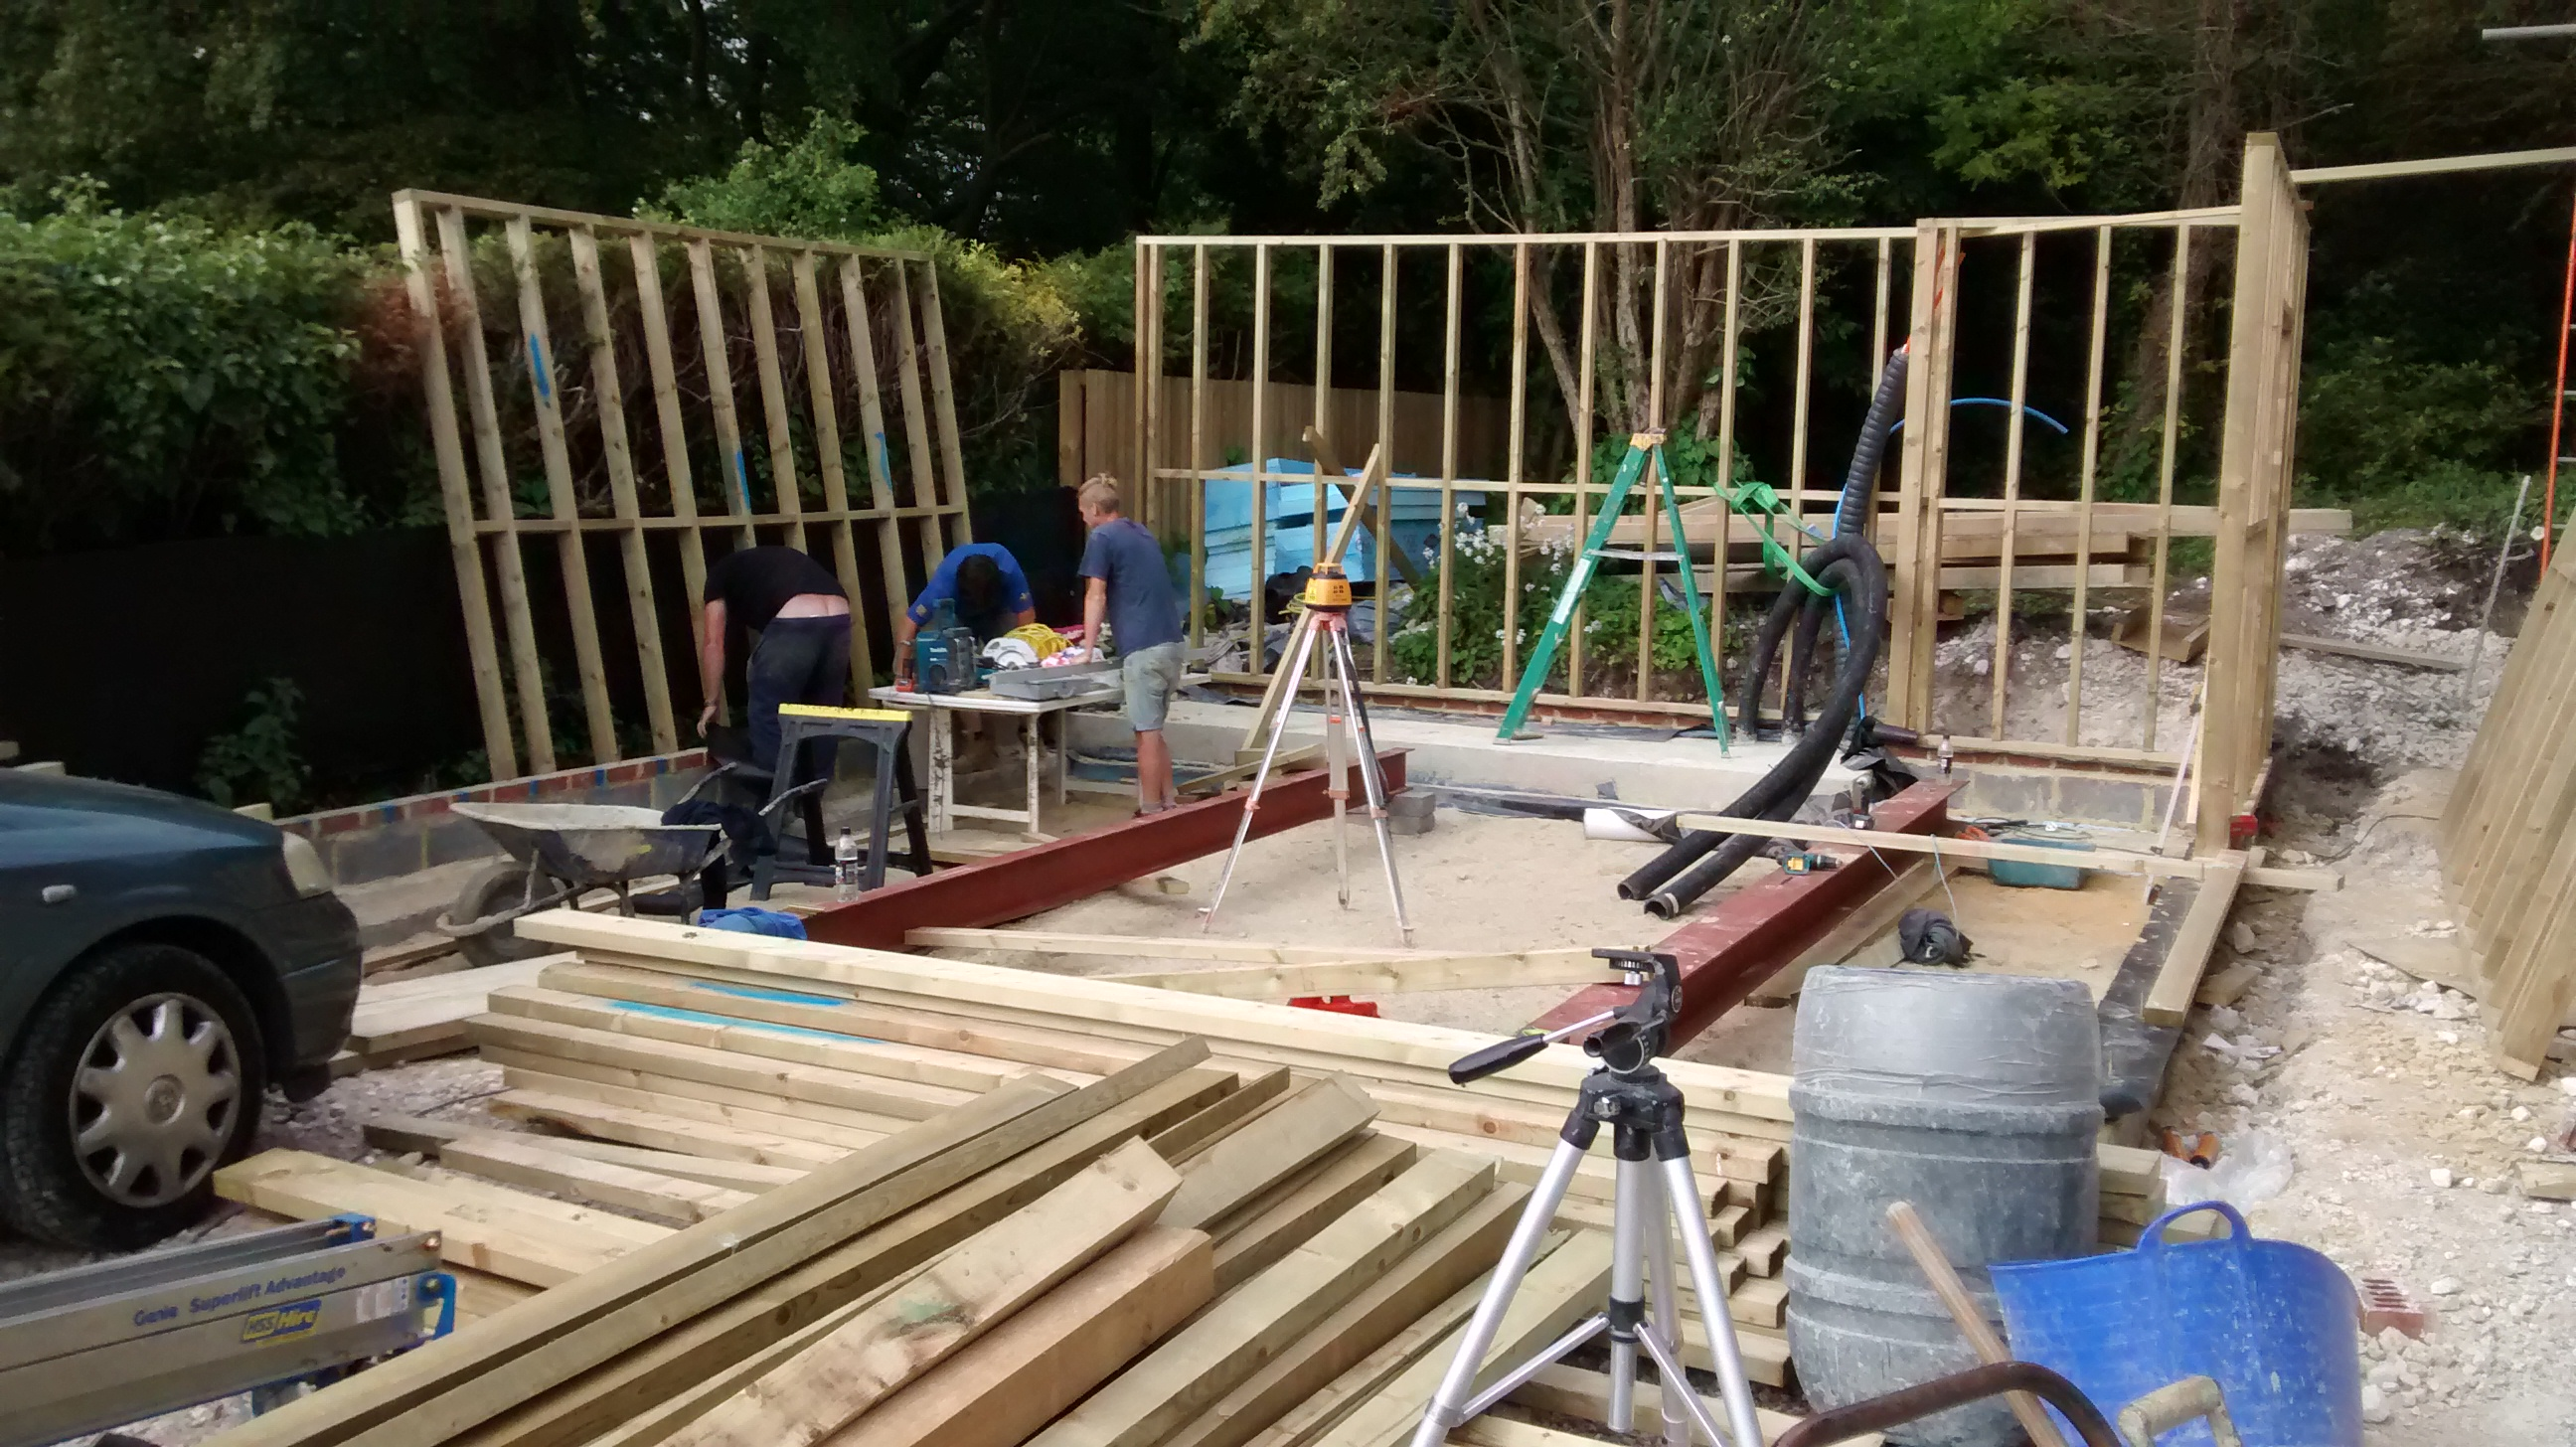 Attractive Joeu0027s Team Building Timber Framed Garage With Steel Beams